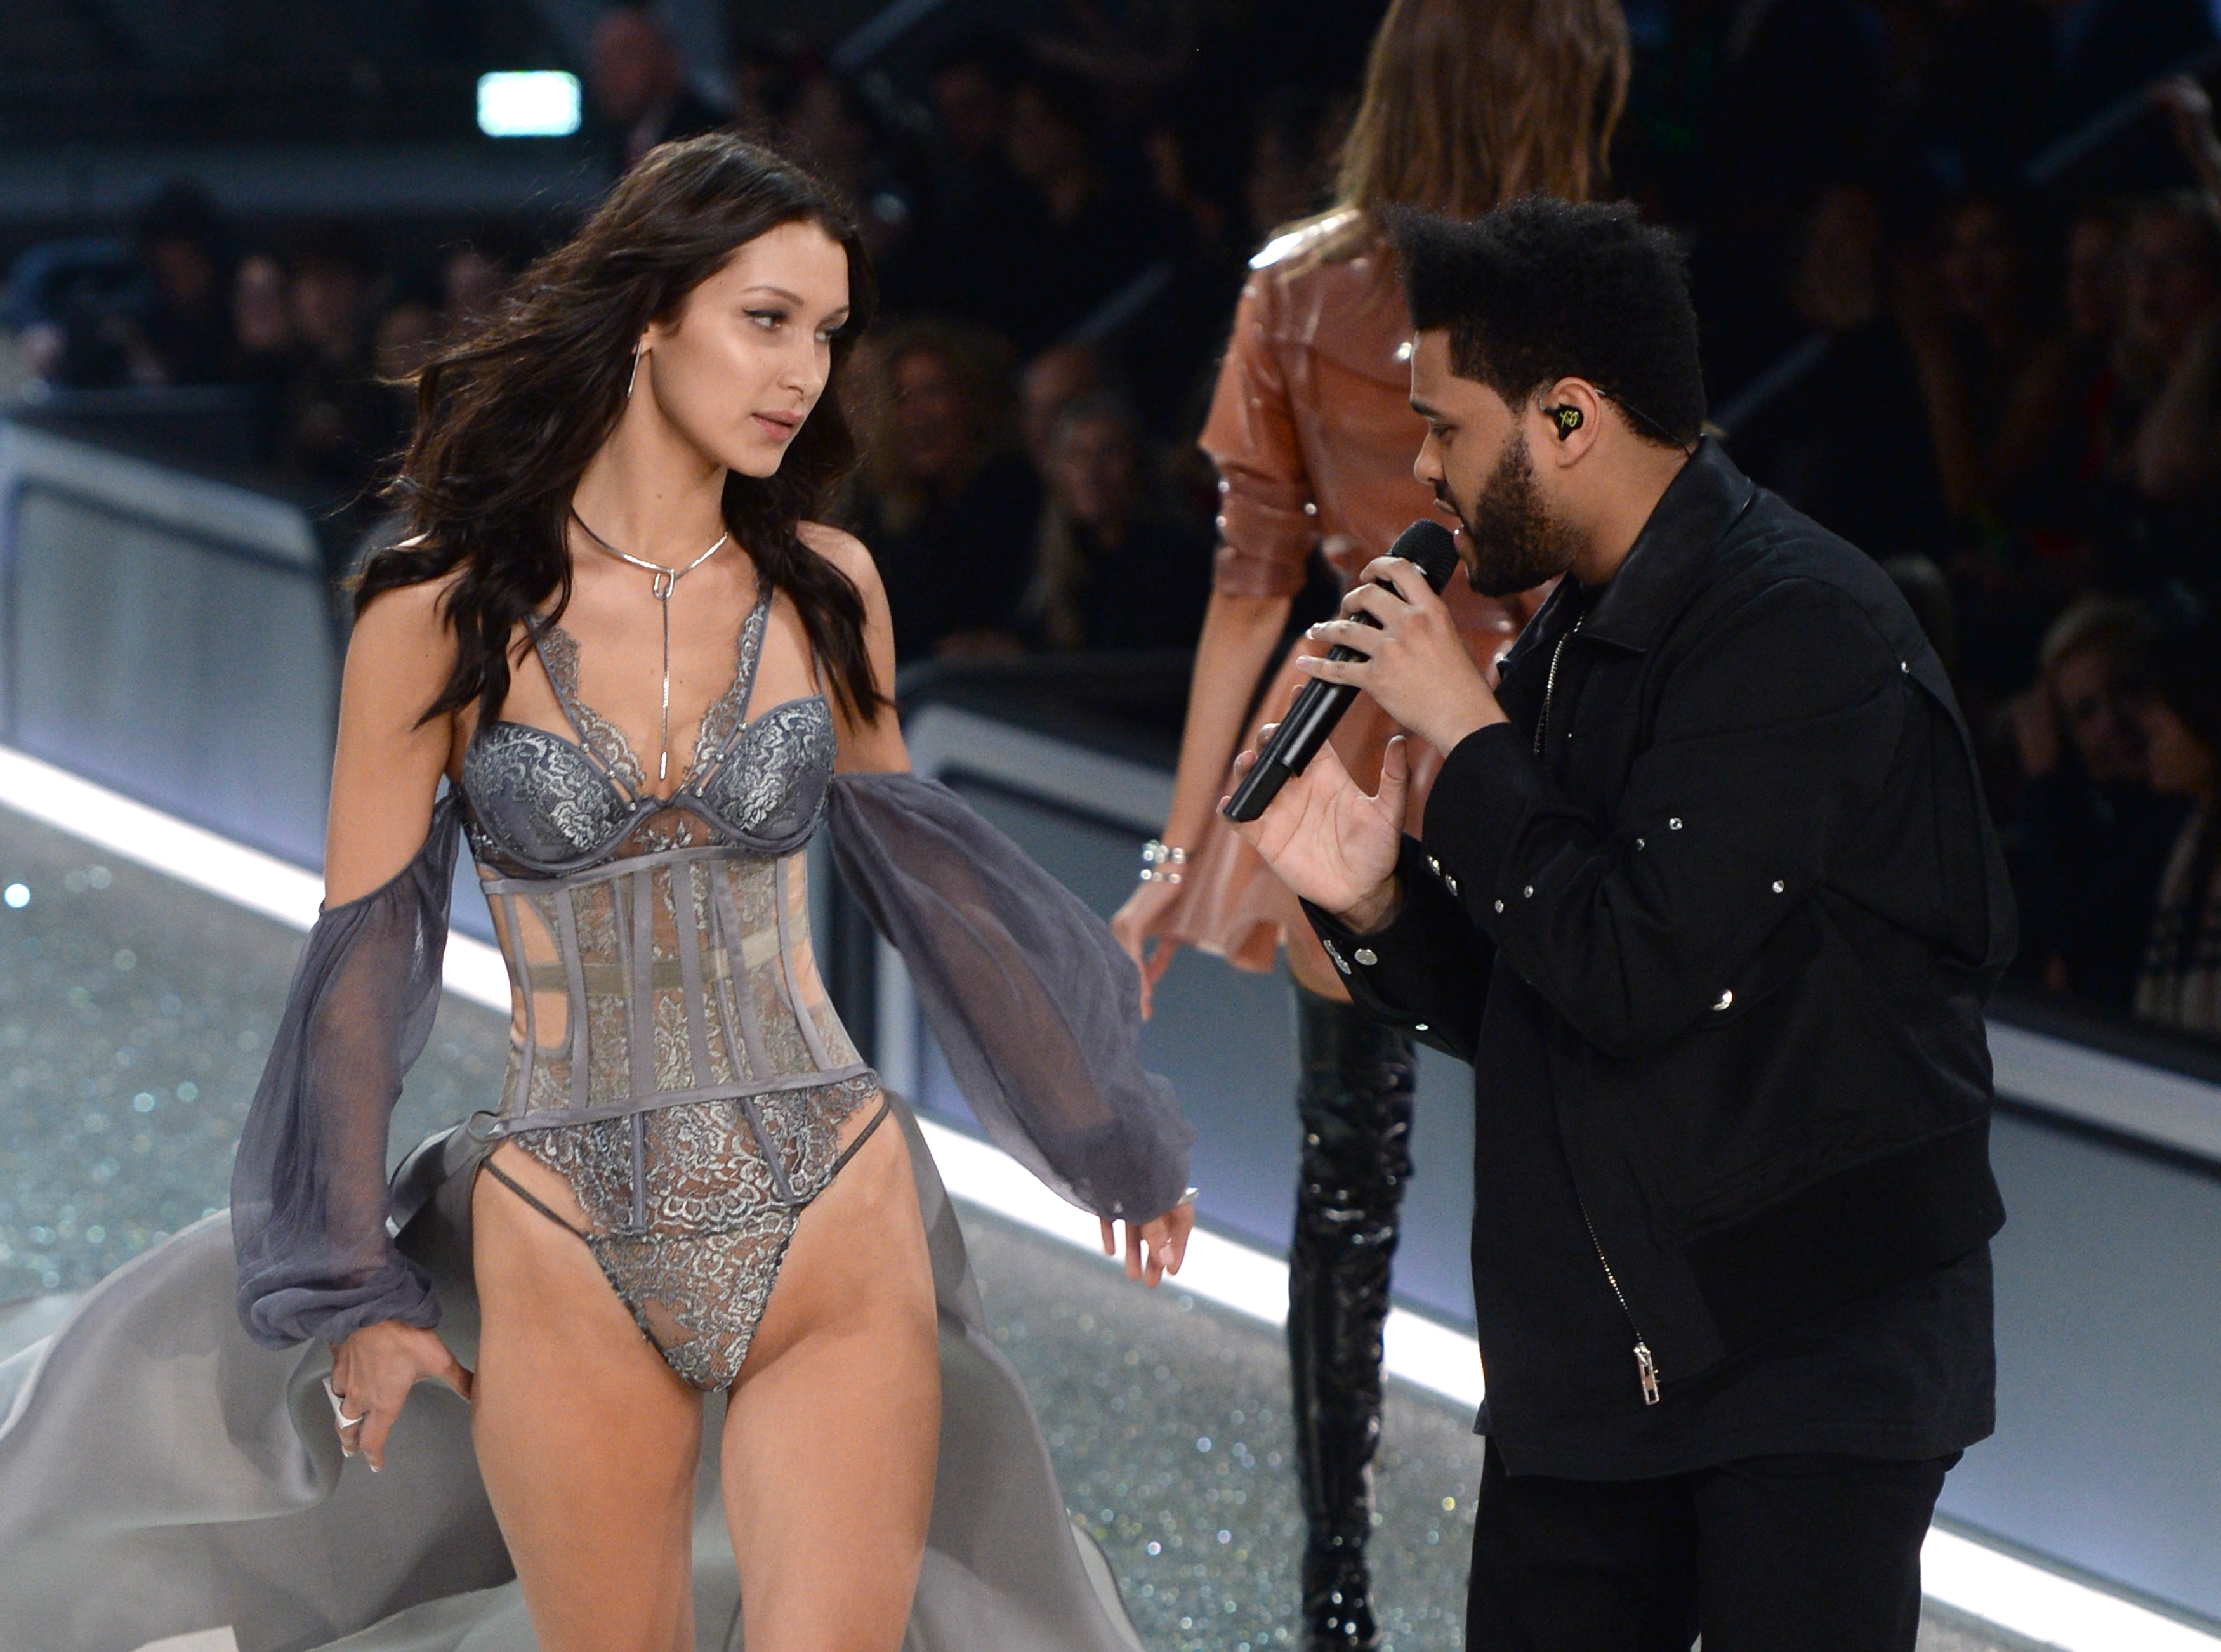 Bella Hadid and Abel Tesfaye aka The Weeknd on the catwalk during the Victoria's Secret Fashion Show 2016 held at The Grand Palais, Paris, France, Image: 307147951, License: Rights-managed, Restrictions: , Model Release: no, Credit line: Profimedia, Press Association